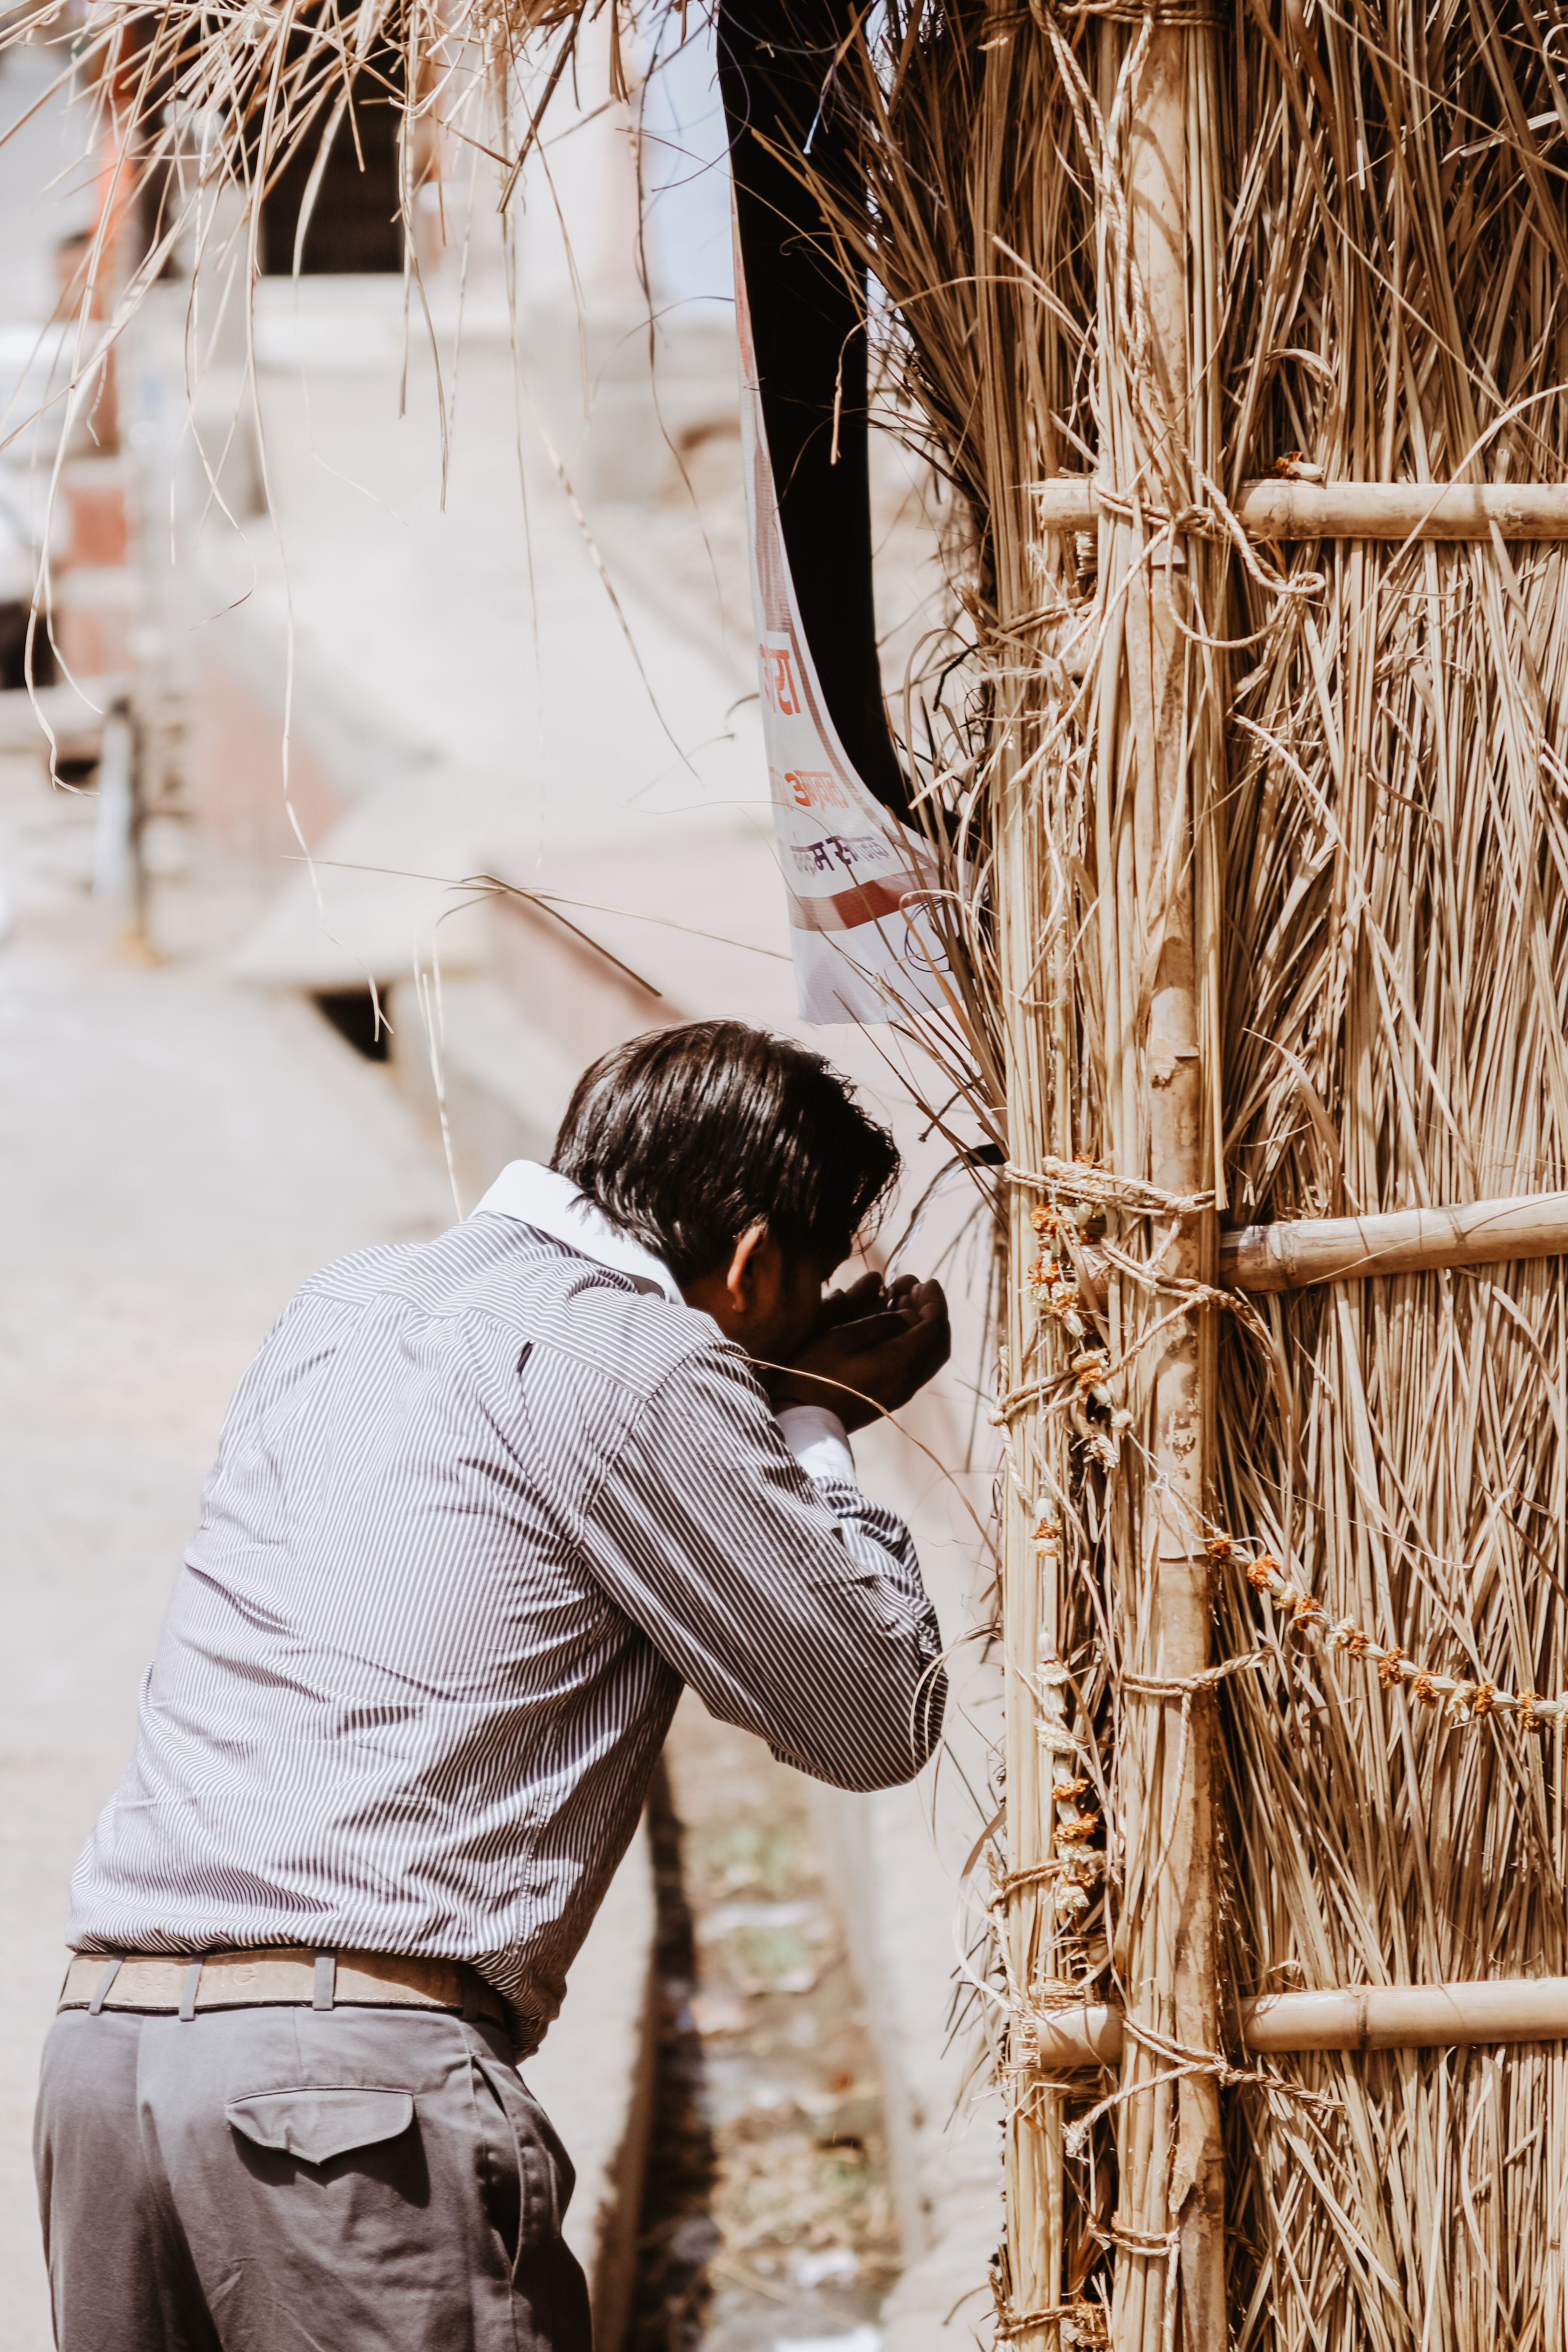 person standing near bamboo hut during daytime